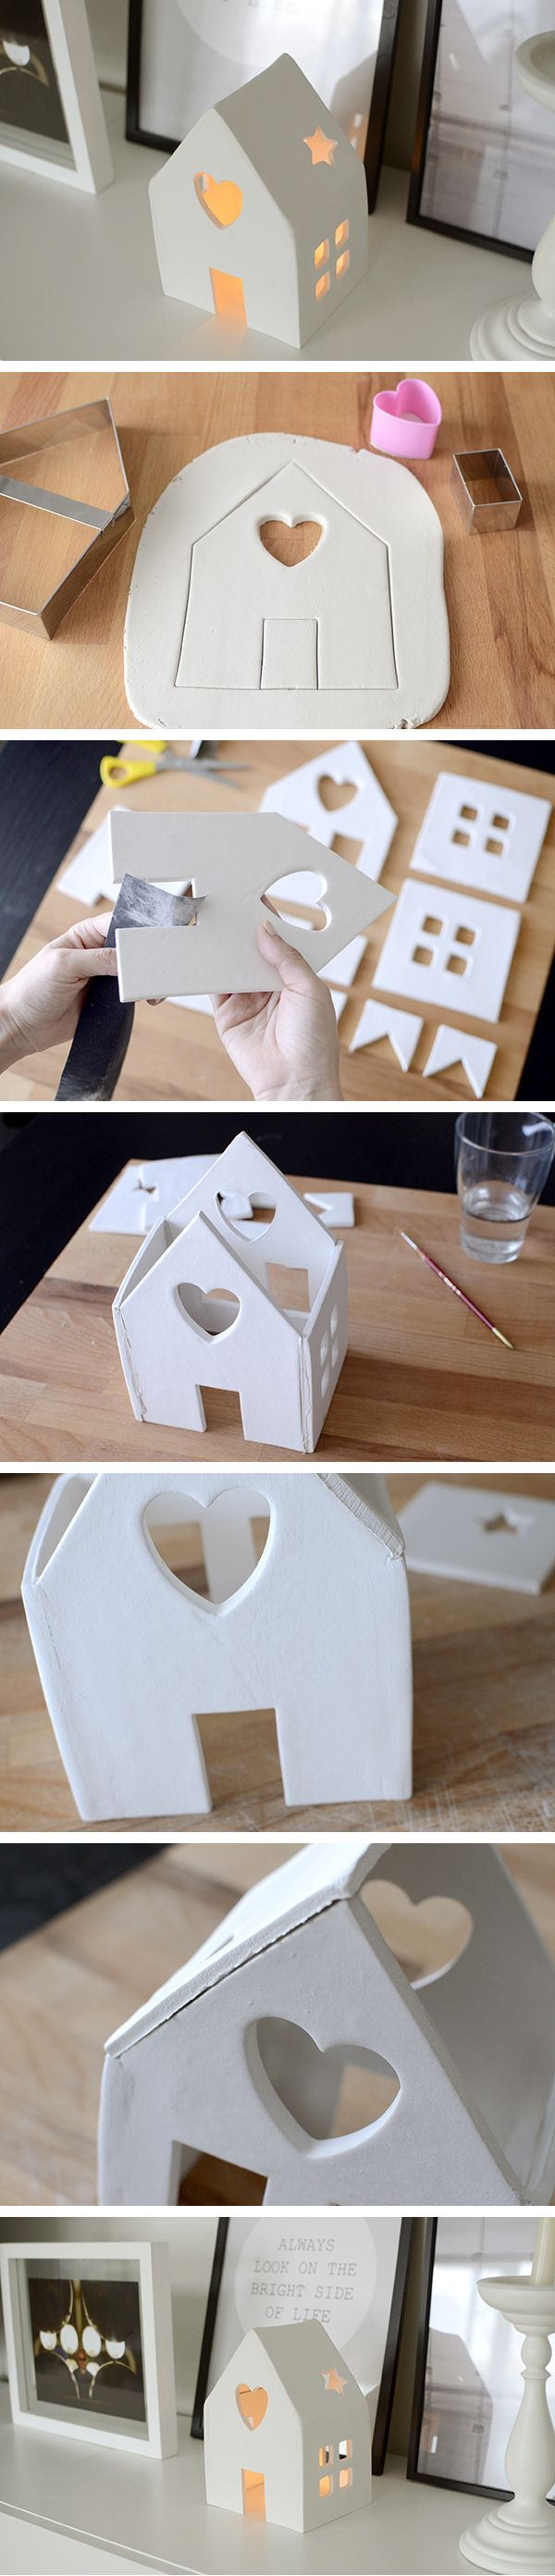 DIY house from white clay